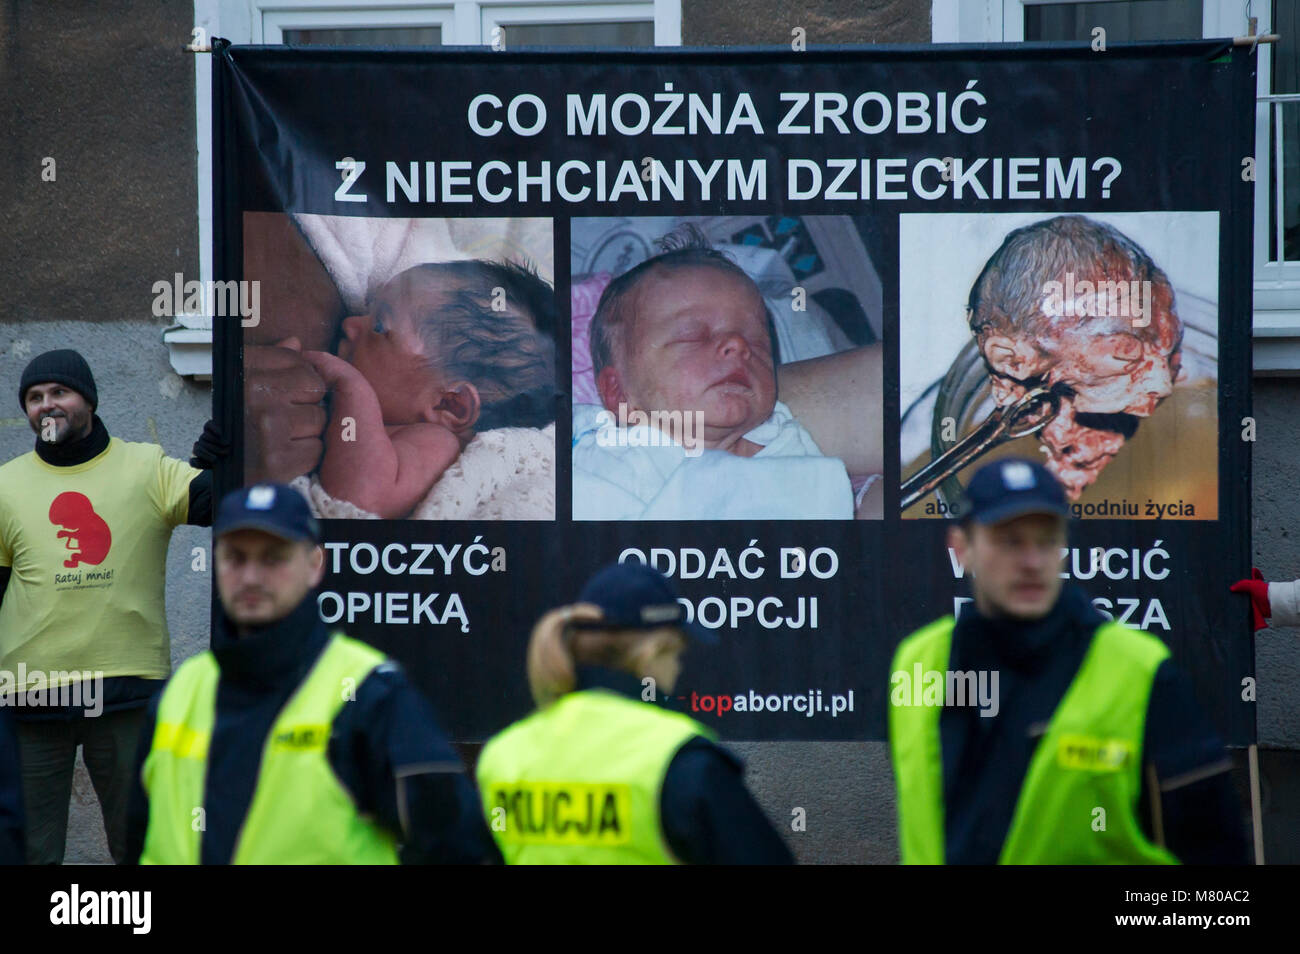 Anti abortion movement in Gdansk, Poland March 8th 2018 © Wojciech Strozyk / Alamy Stock Photo - Stock Image